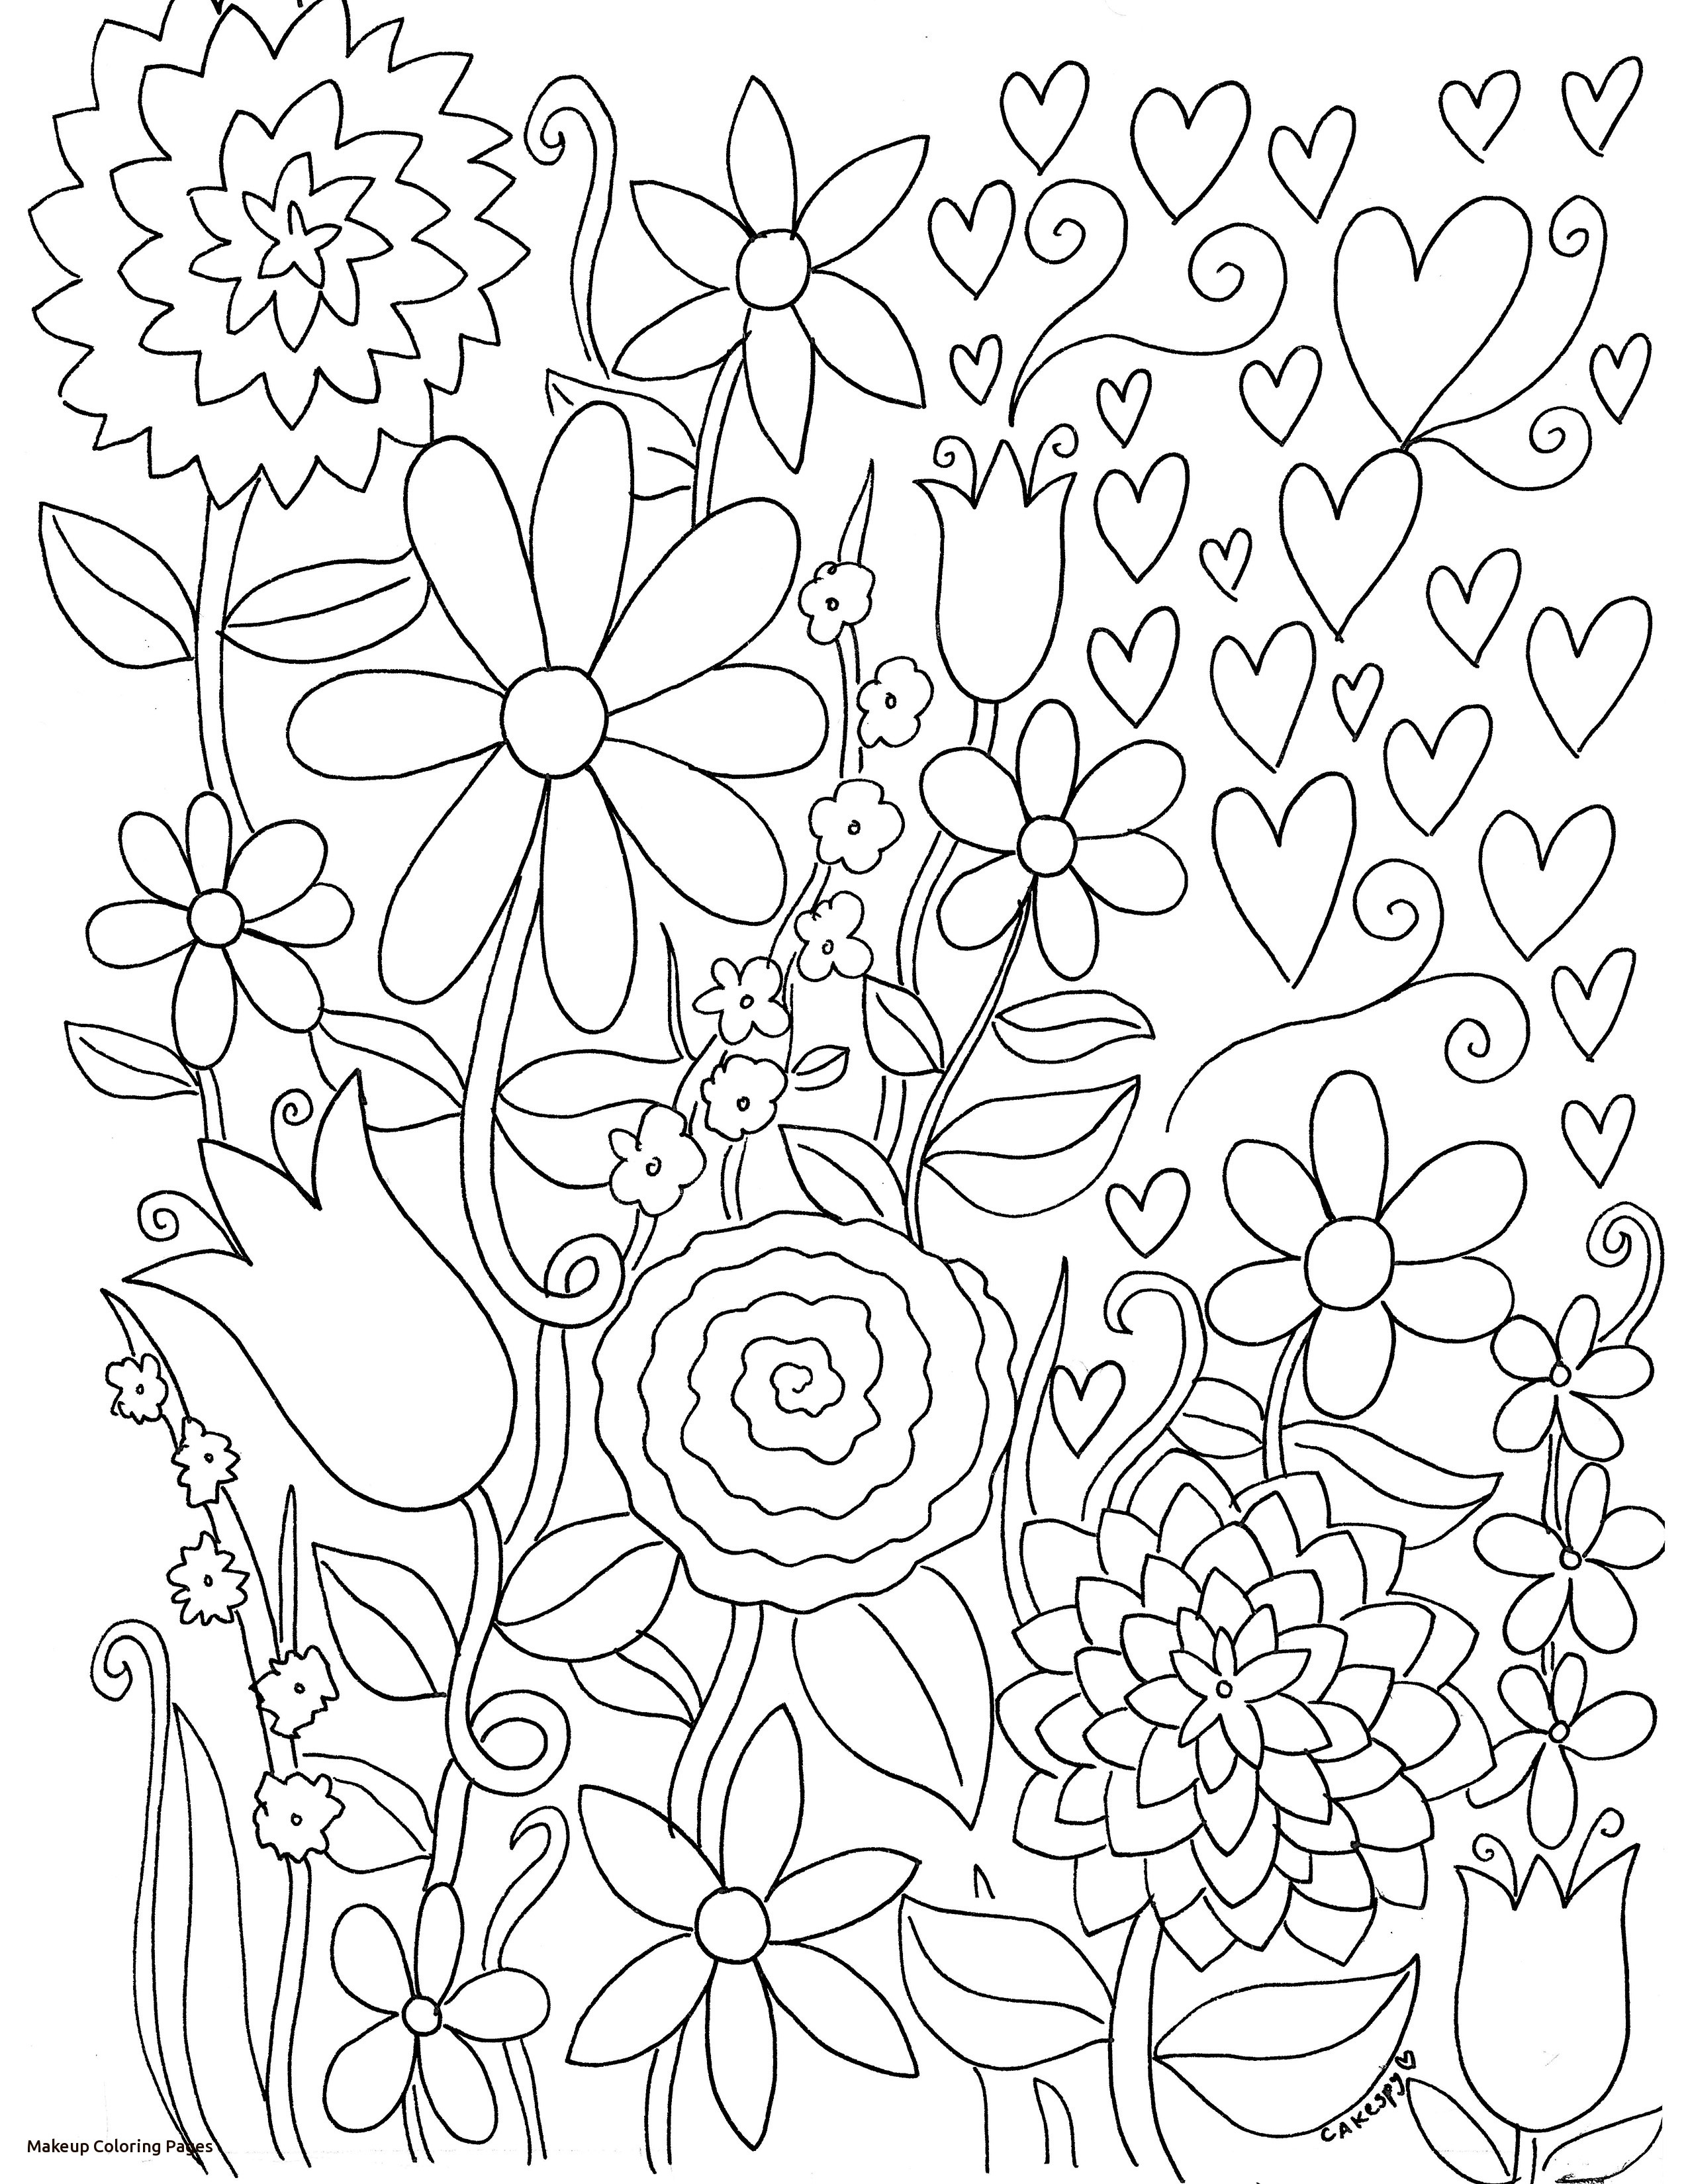 Coloring Pages Makeup At Getdrawings Com Free For Personal